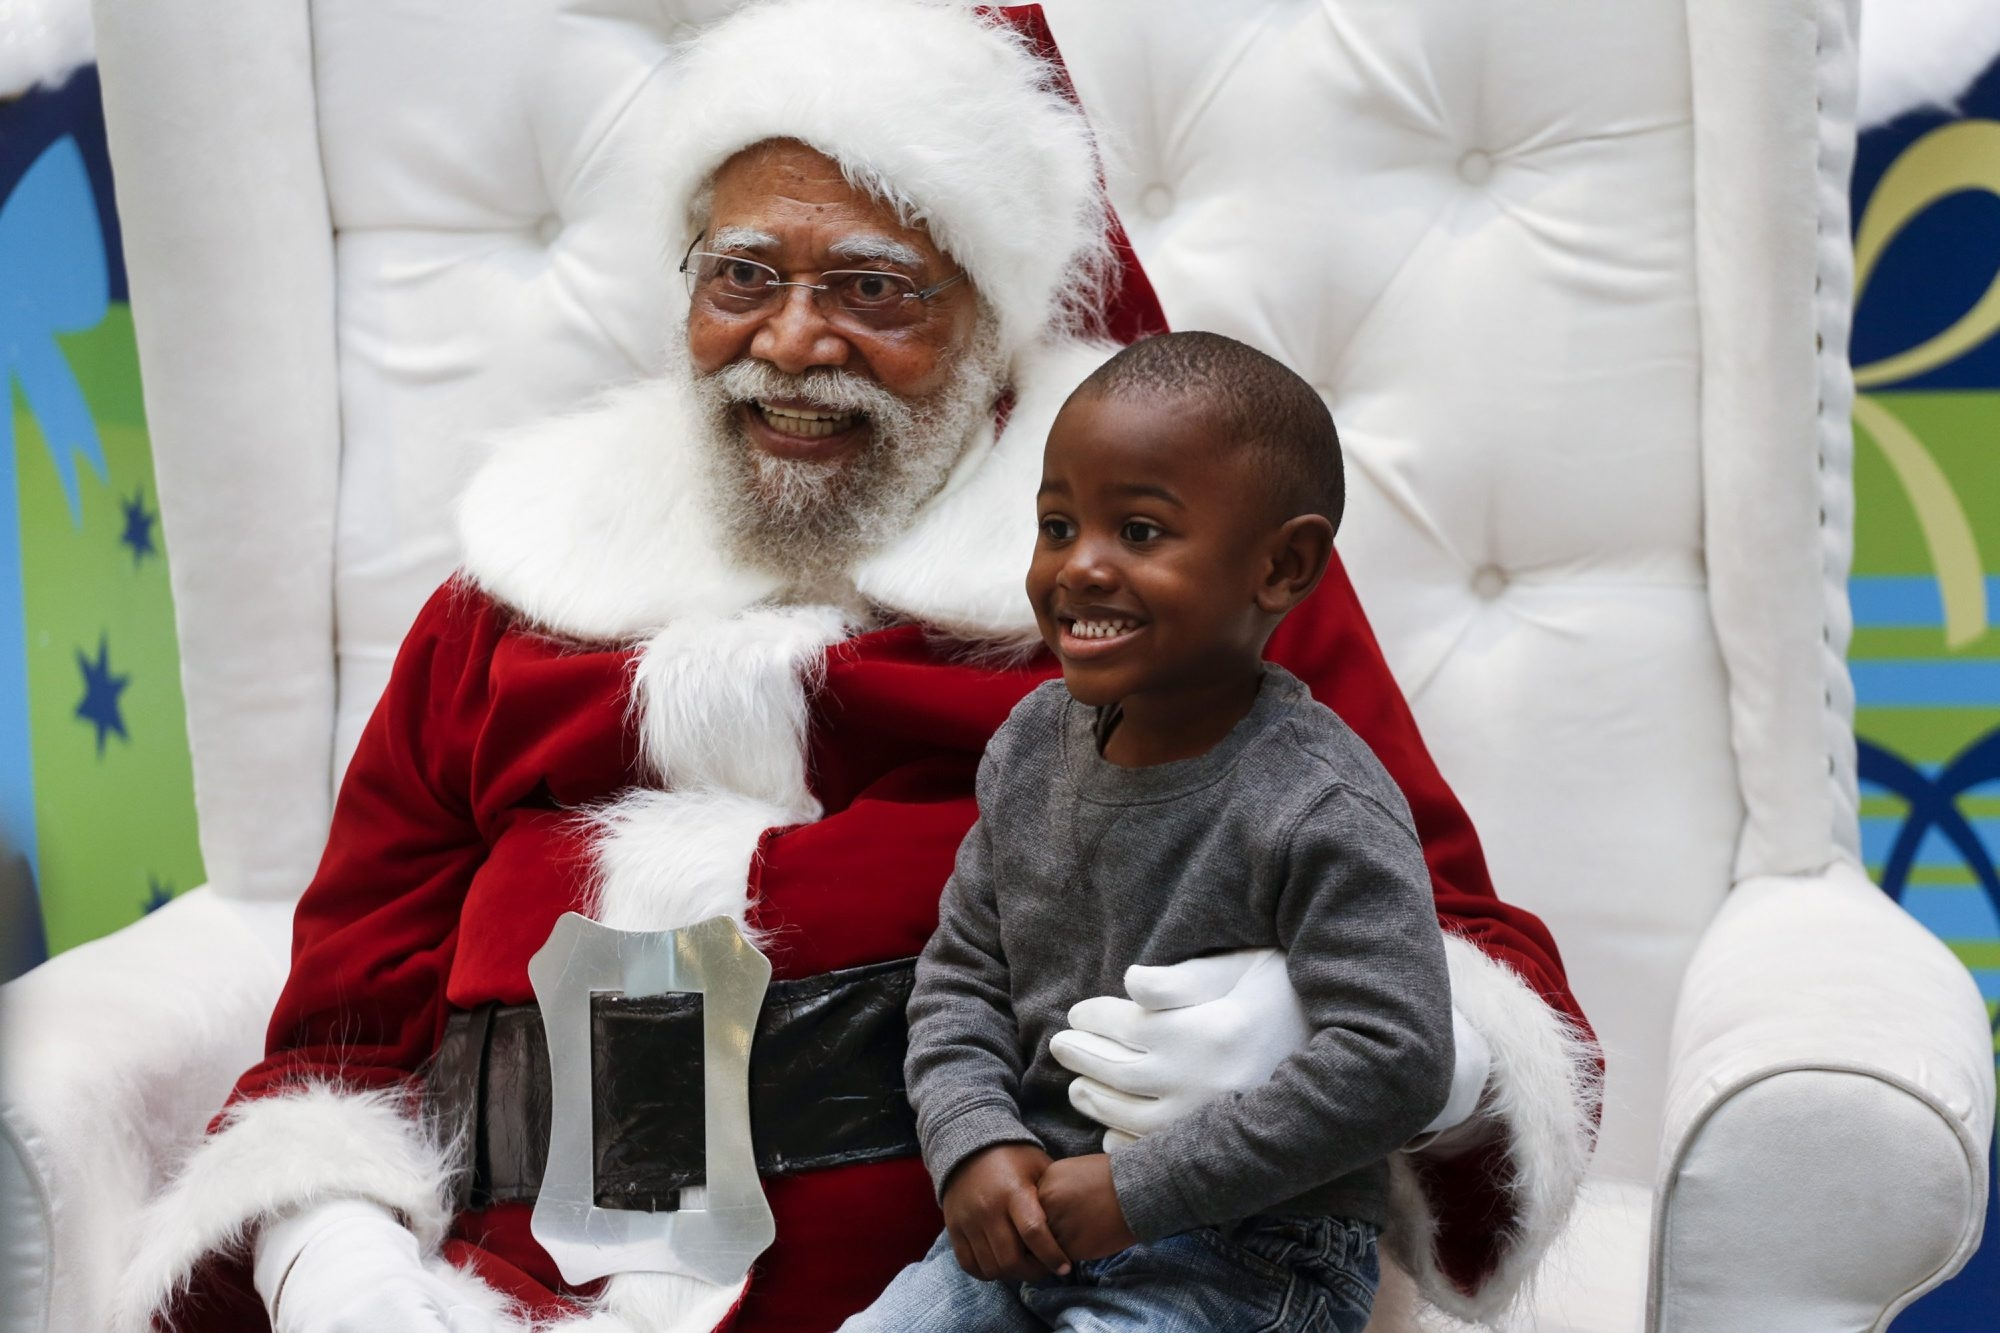 Jahleel Logan, 3, poses with Langston Patterson, 77, dressed as Santa Claus, at the Baldwin Hills Crenshaw Plaza in Los Angeles. The mall is one of the few in the country with a black Santa. Patterson has been Santa at the mall since 2004.